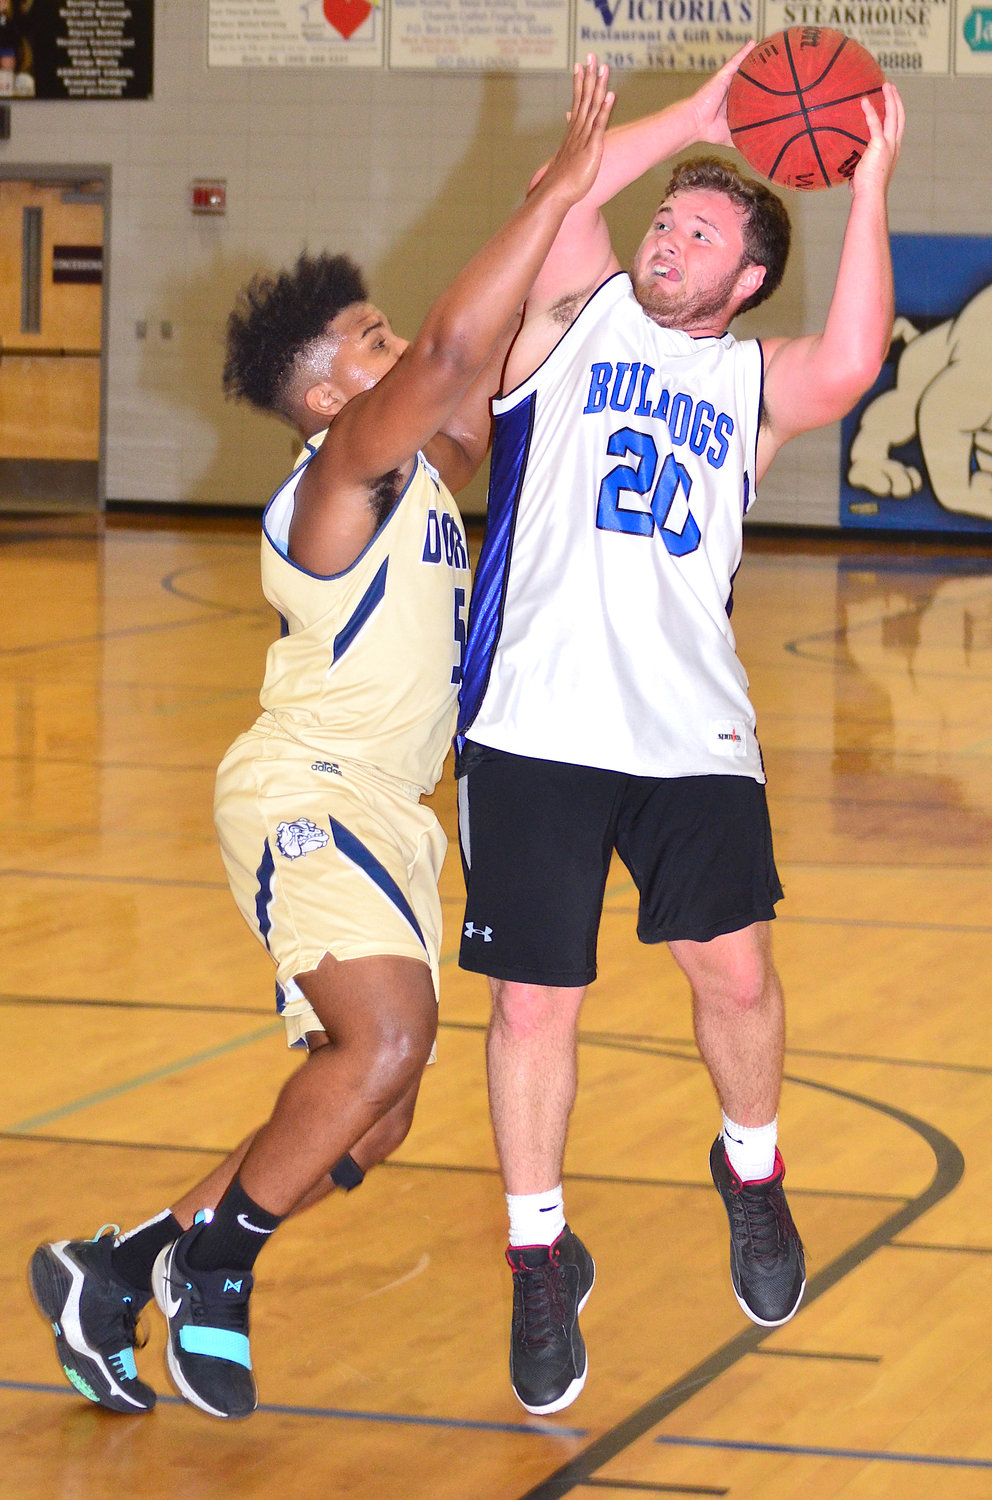 Carbon Hill's Jacob Aldridge (20) shoots over a Dora defender during their summer game at Carbon Hill High School on Tuesday. The home team won 53-40.